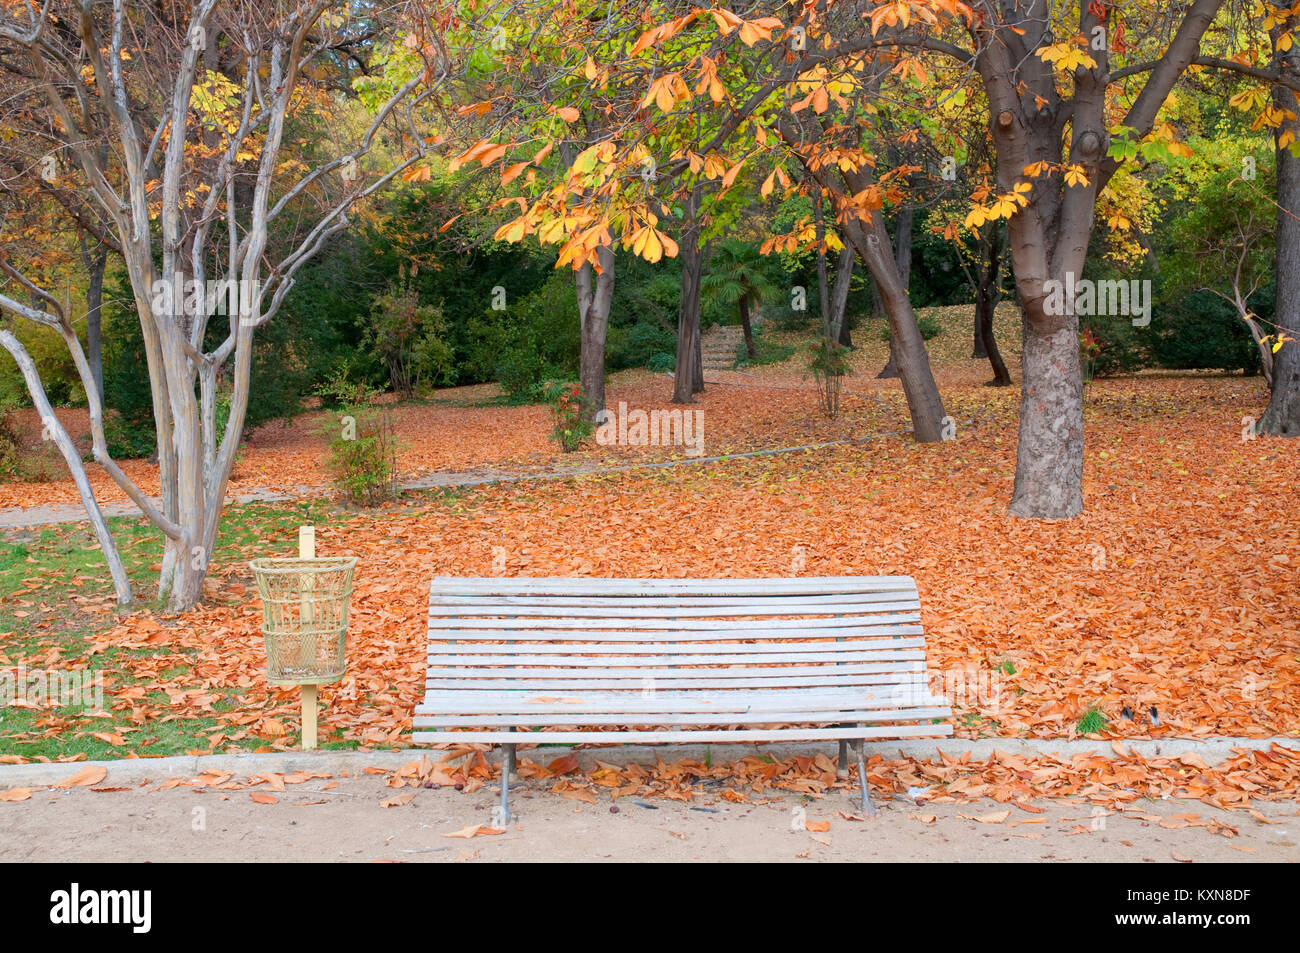 Bench and wastepaper basket. Campo del Moro gardens, Madrid, Spain. - Stock Image